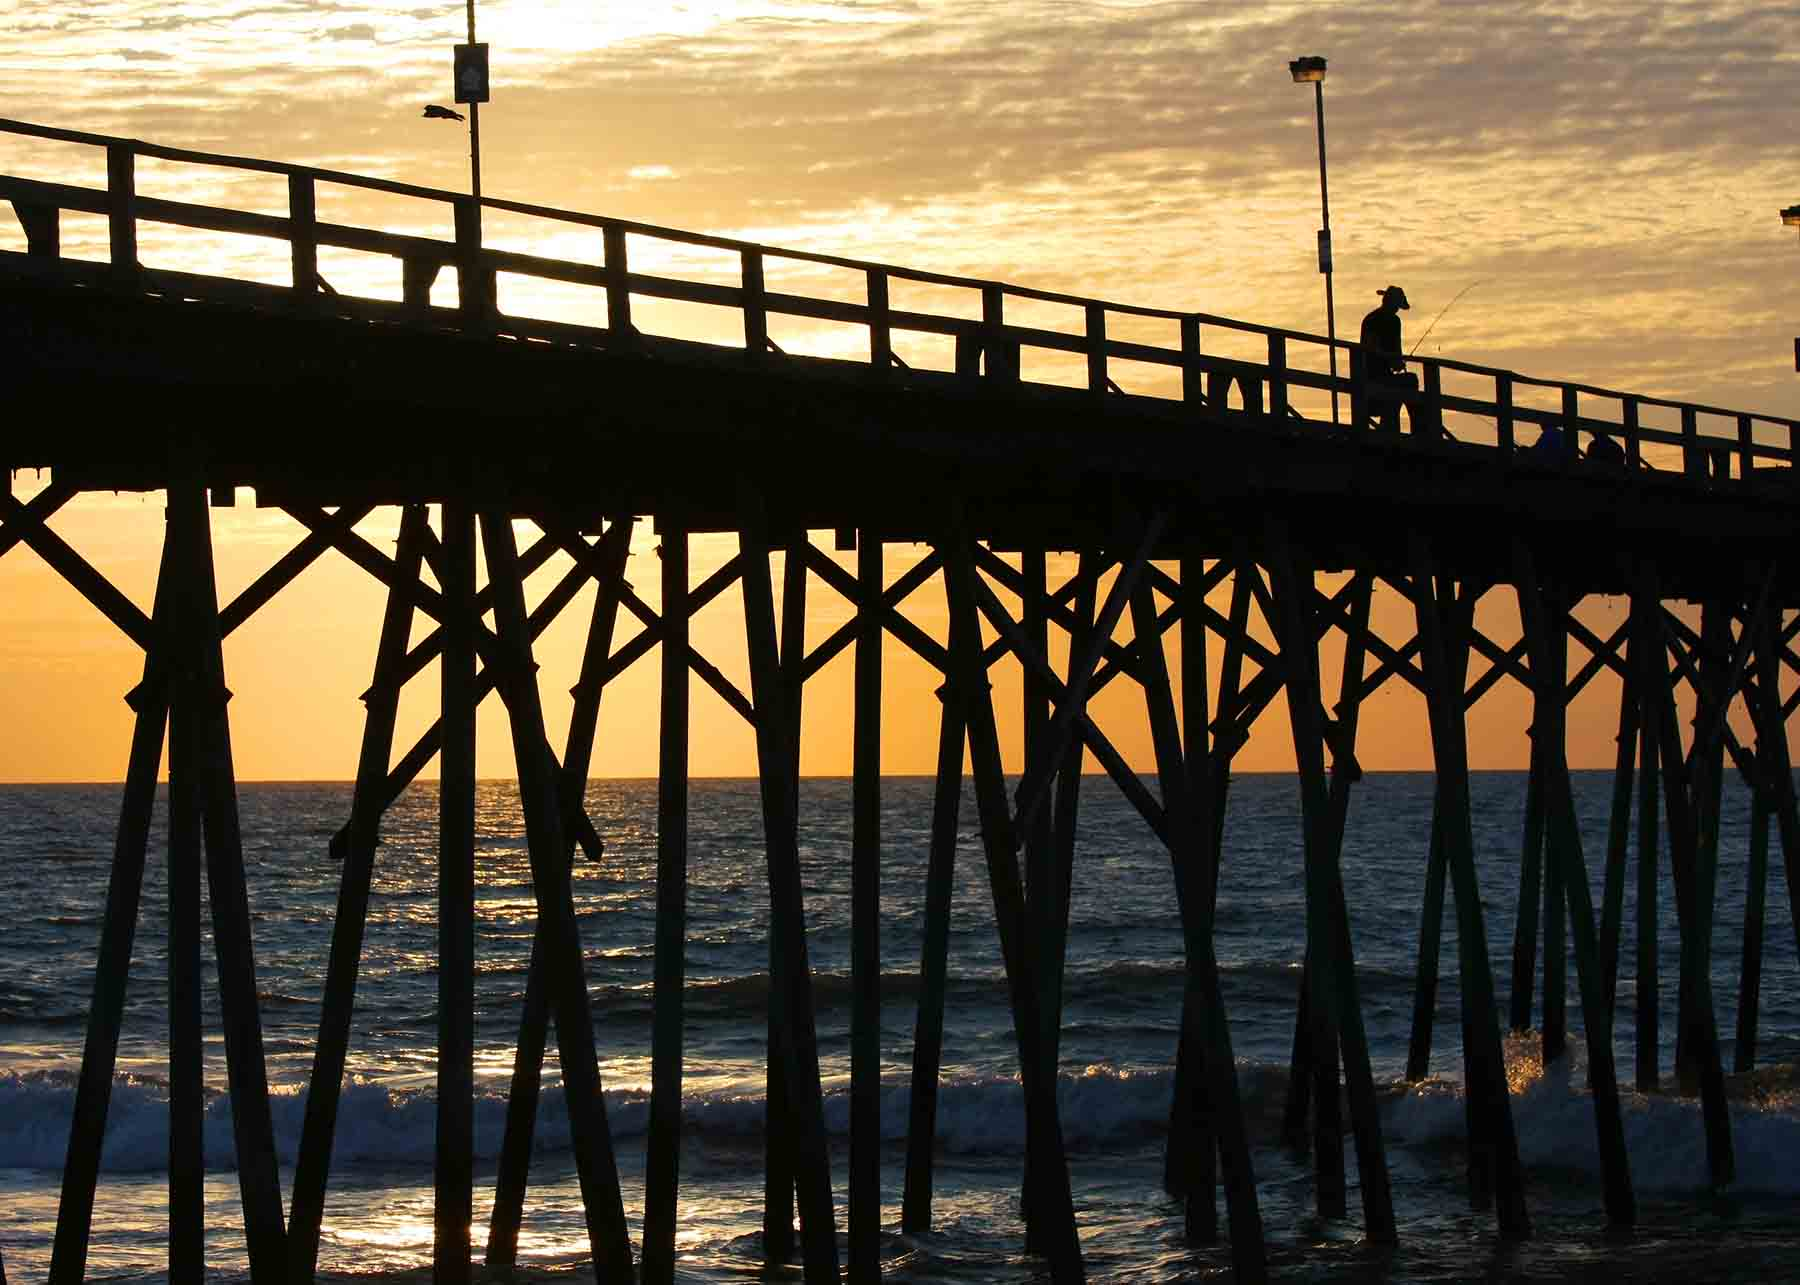 The pier at Kure Beach in North Carolina